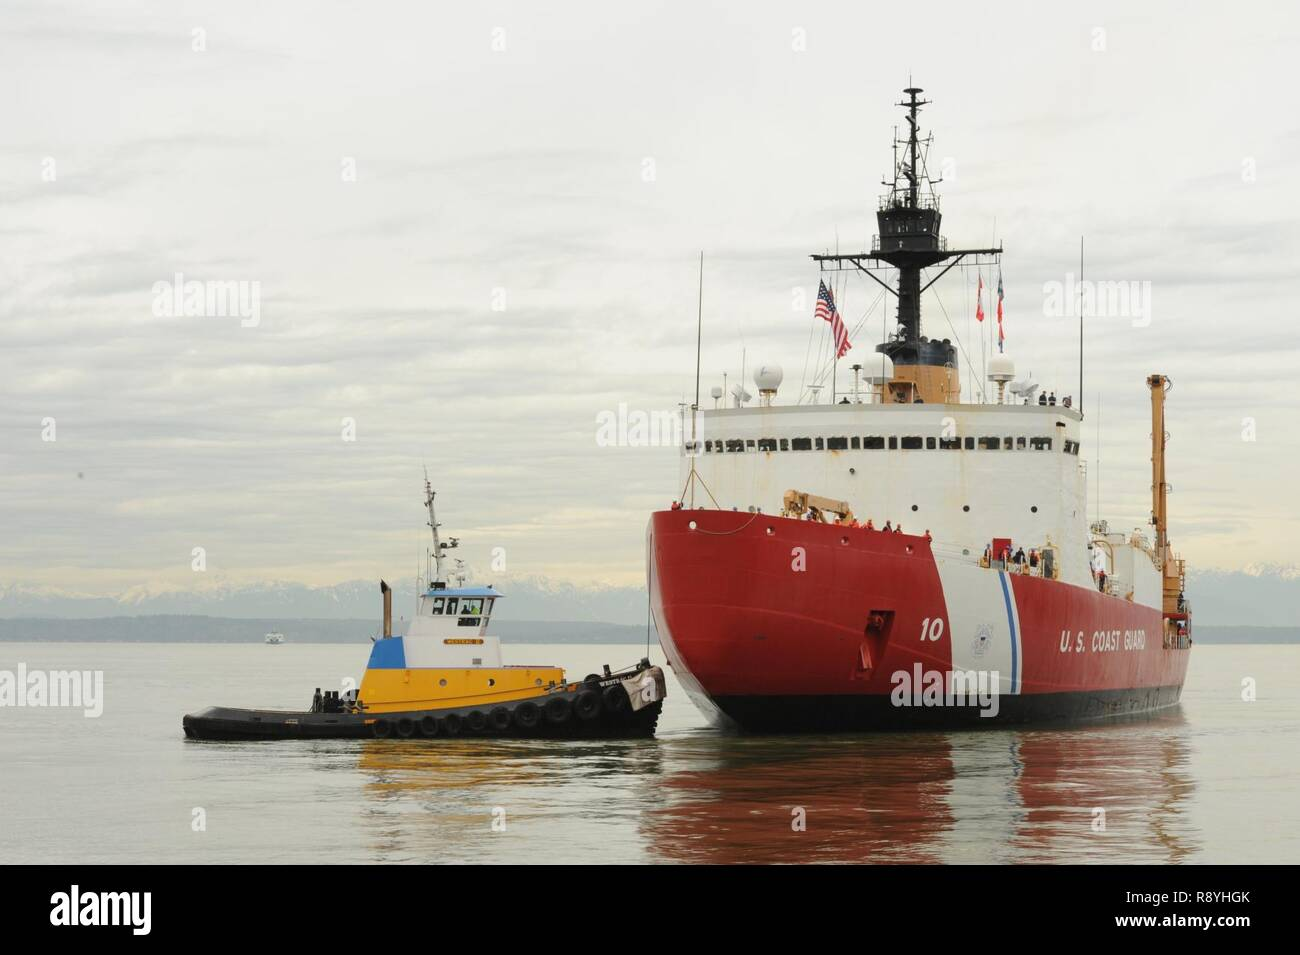 The crew of the Coast Guard Cutter Polar Star, a 399-foot heavy icebreaker, is escorted by the crew of the Westrac II, a 73-foot towing vessel, as they moor to Pier 66 in Seattle, March 17, 2017.    The crew returned from a 107-day expedition to Antartica, which involved maintaining the decades-old icebreaker to ensure a year's worth of supplies and fuel safely reached the National Science Foundation's McMurdo and Amundsen-Scott South Pole stations.    U.S. Coast Guard - Stock Image